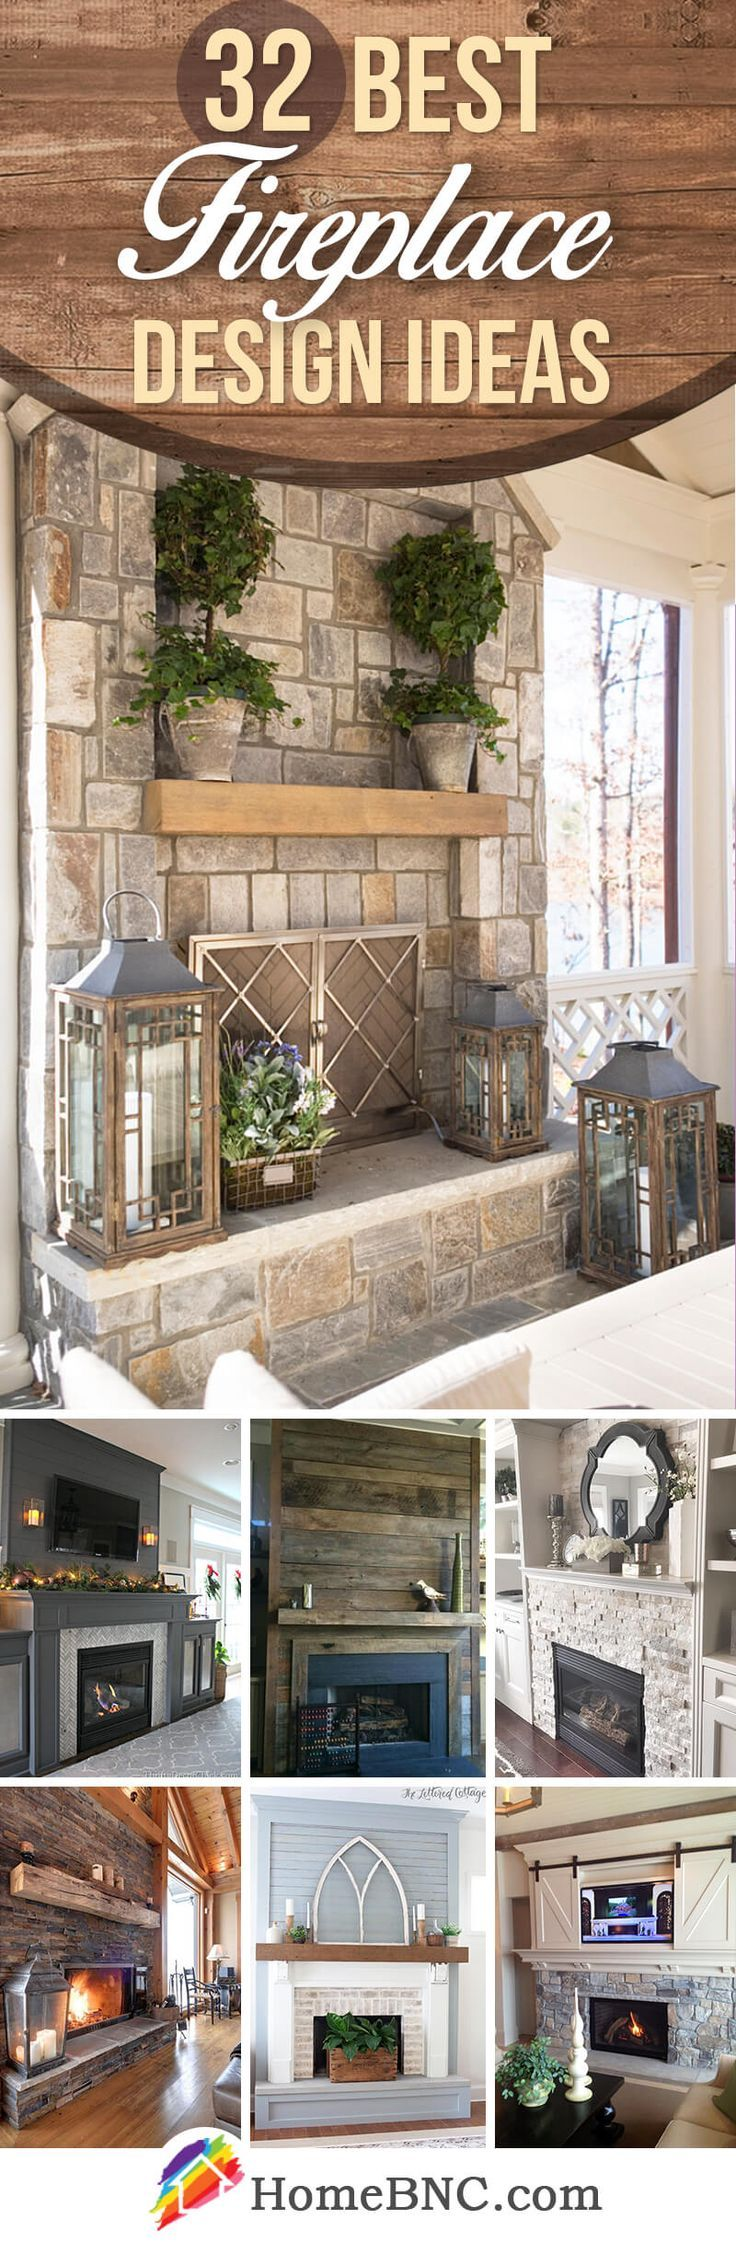 209 best fireplaces images on pinterest electric fireplaces